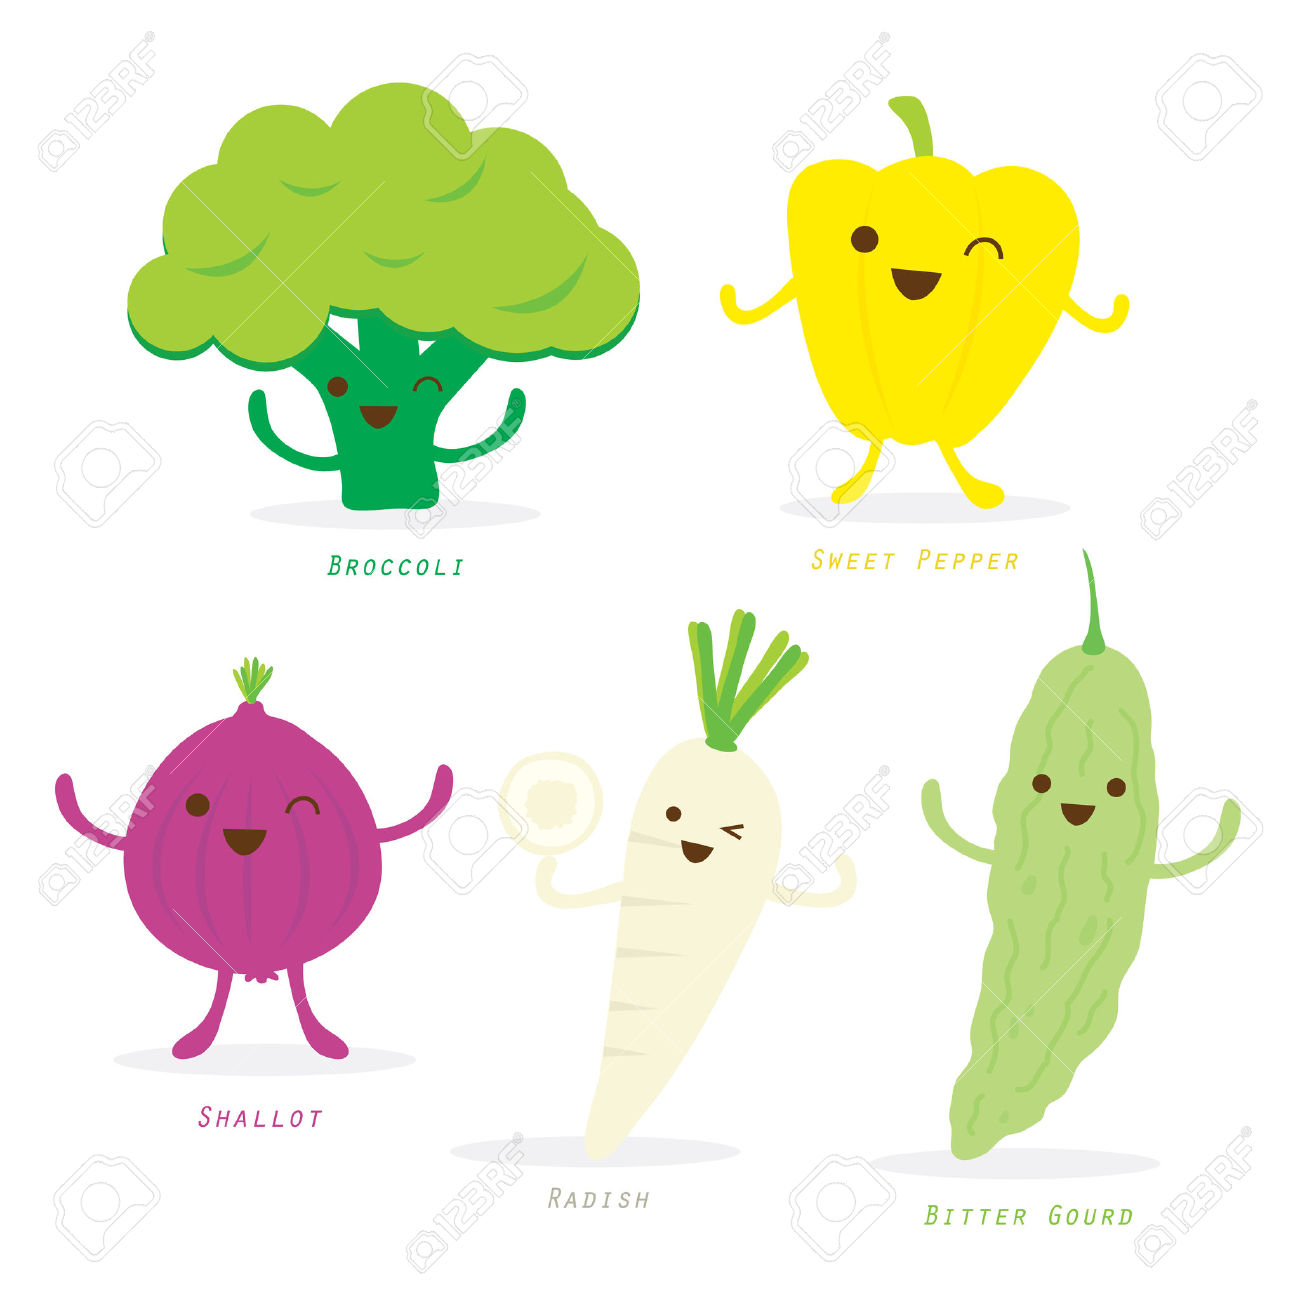 Gourd clipart #15, Download drawings